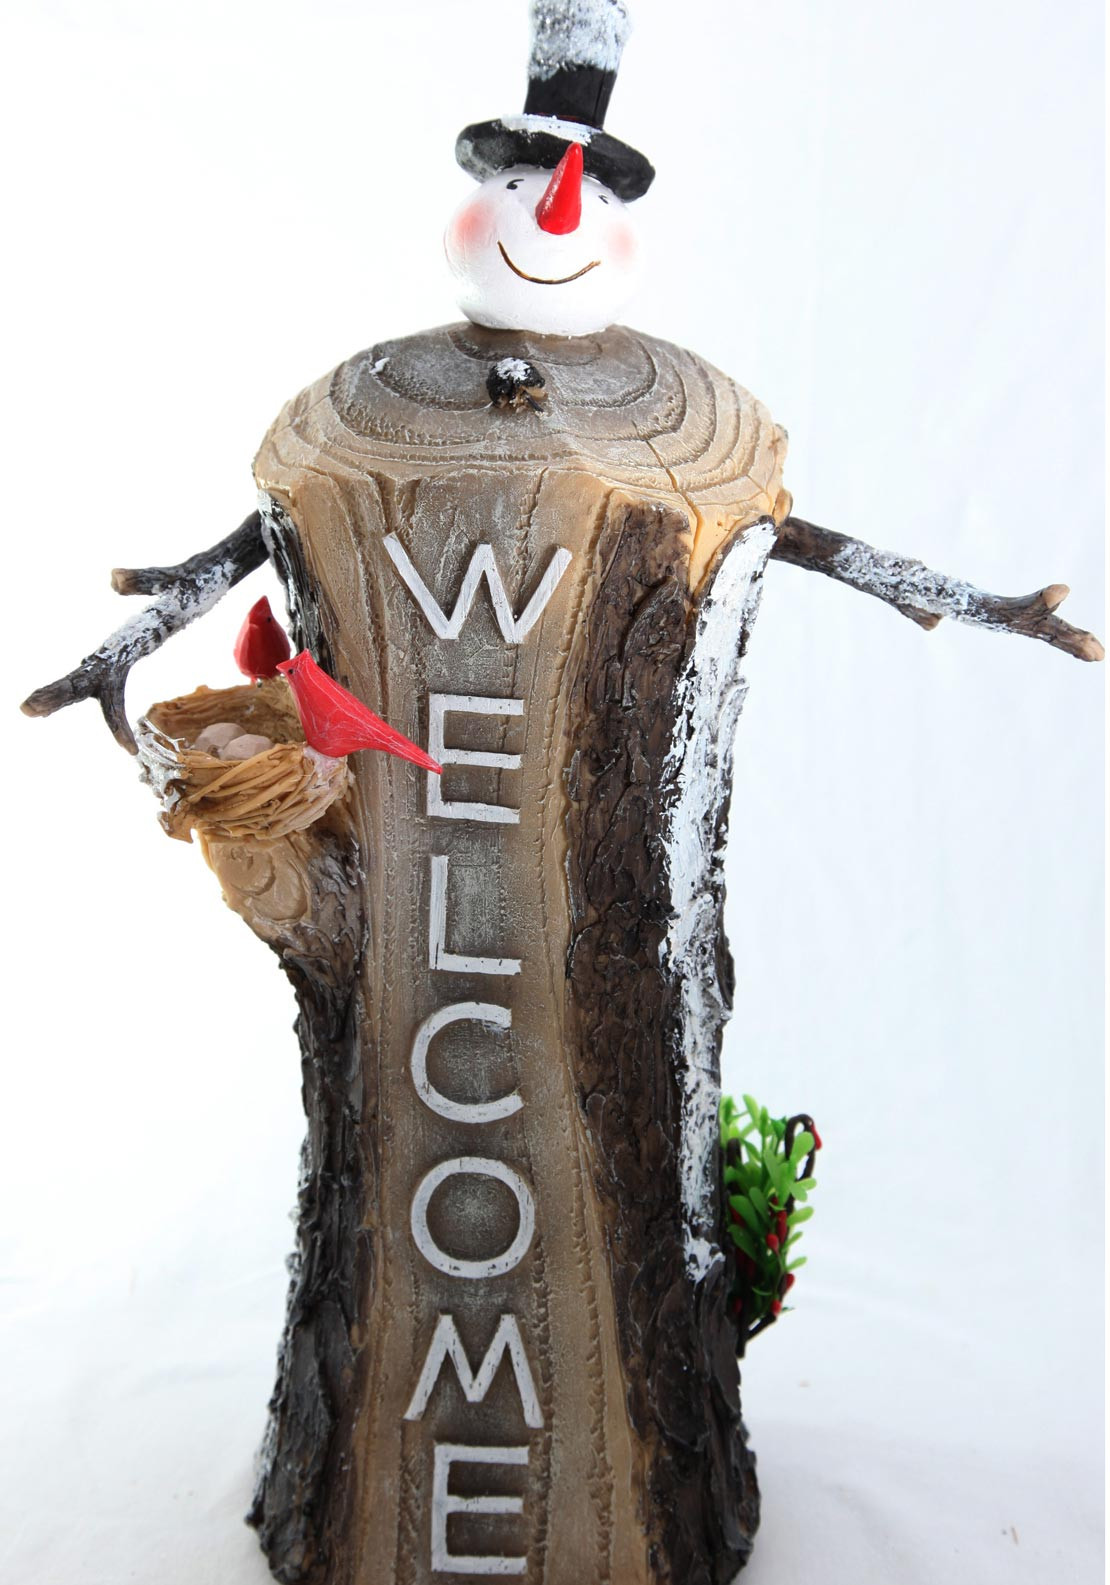 Verano Christmas Welcome Small Snowman Wooden Ornament